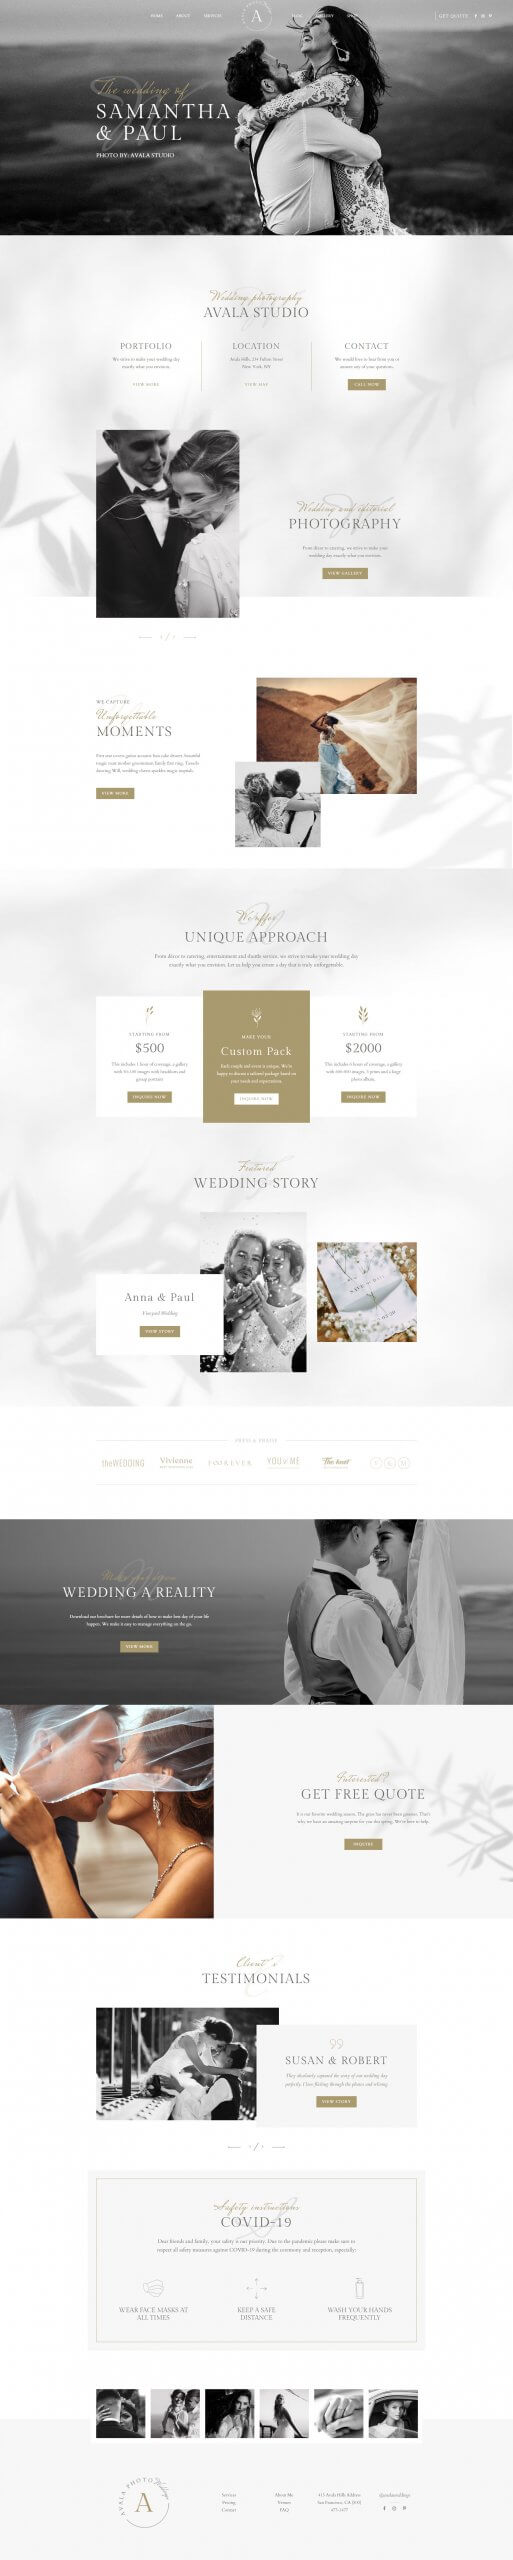 http://avala.bold-themes.com/wp-content/uploads/2021/02/Winter-Home-02-scaled.jpg